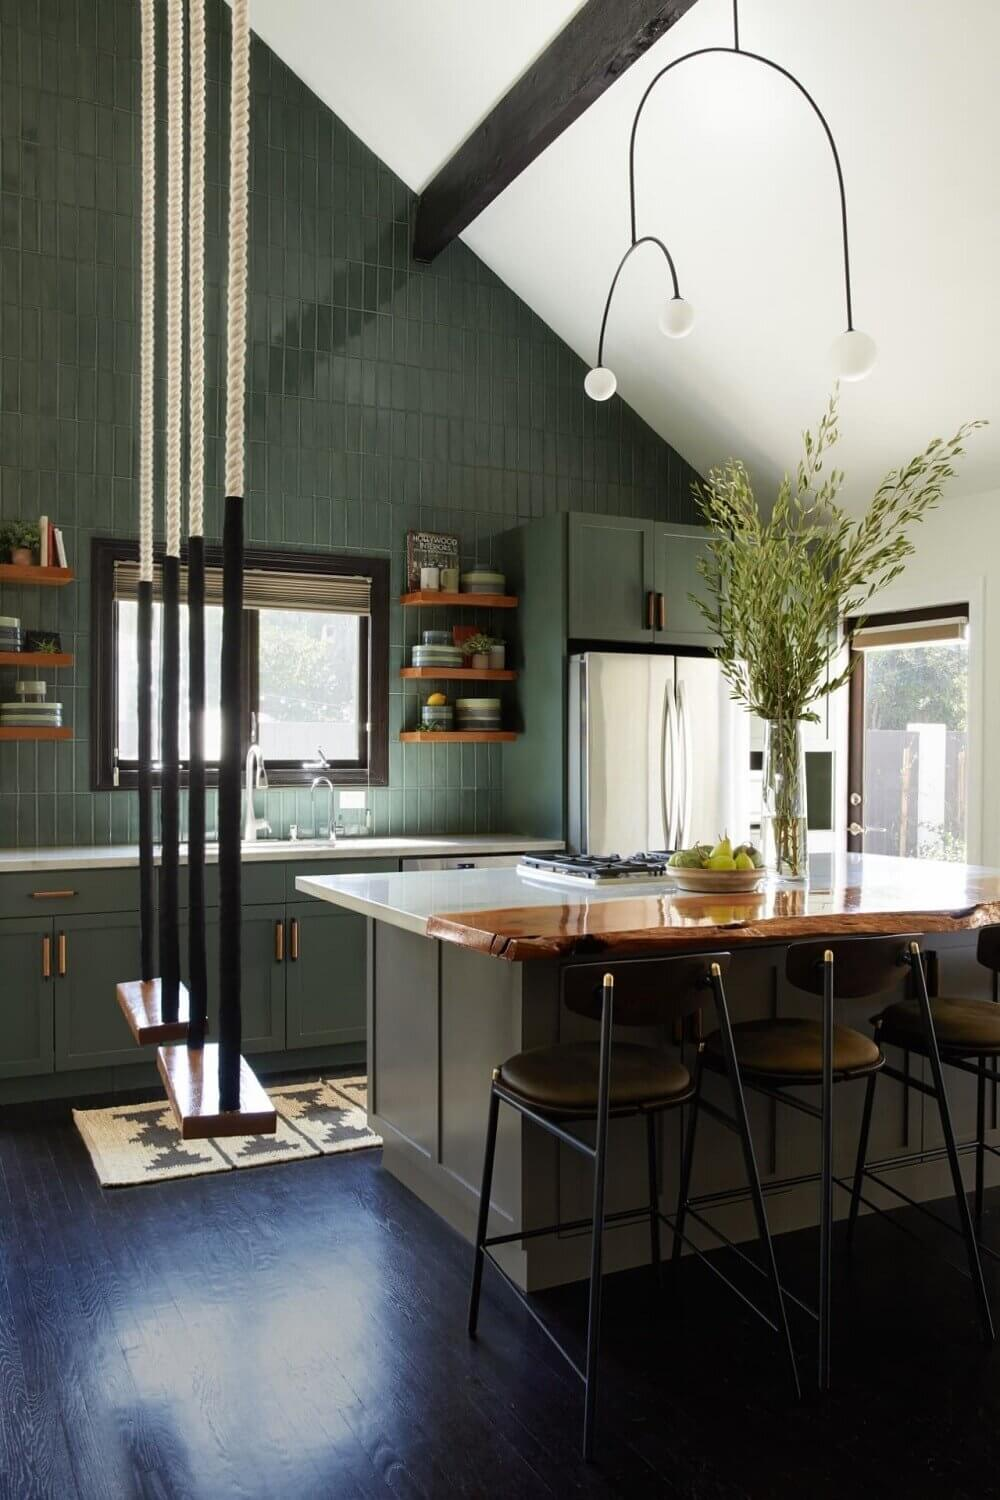 green-kitchen-cabinets-green-tiles-nordroom